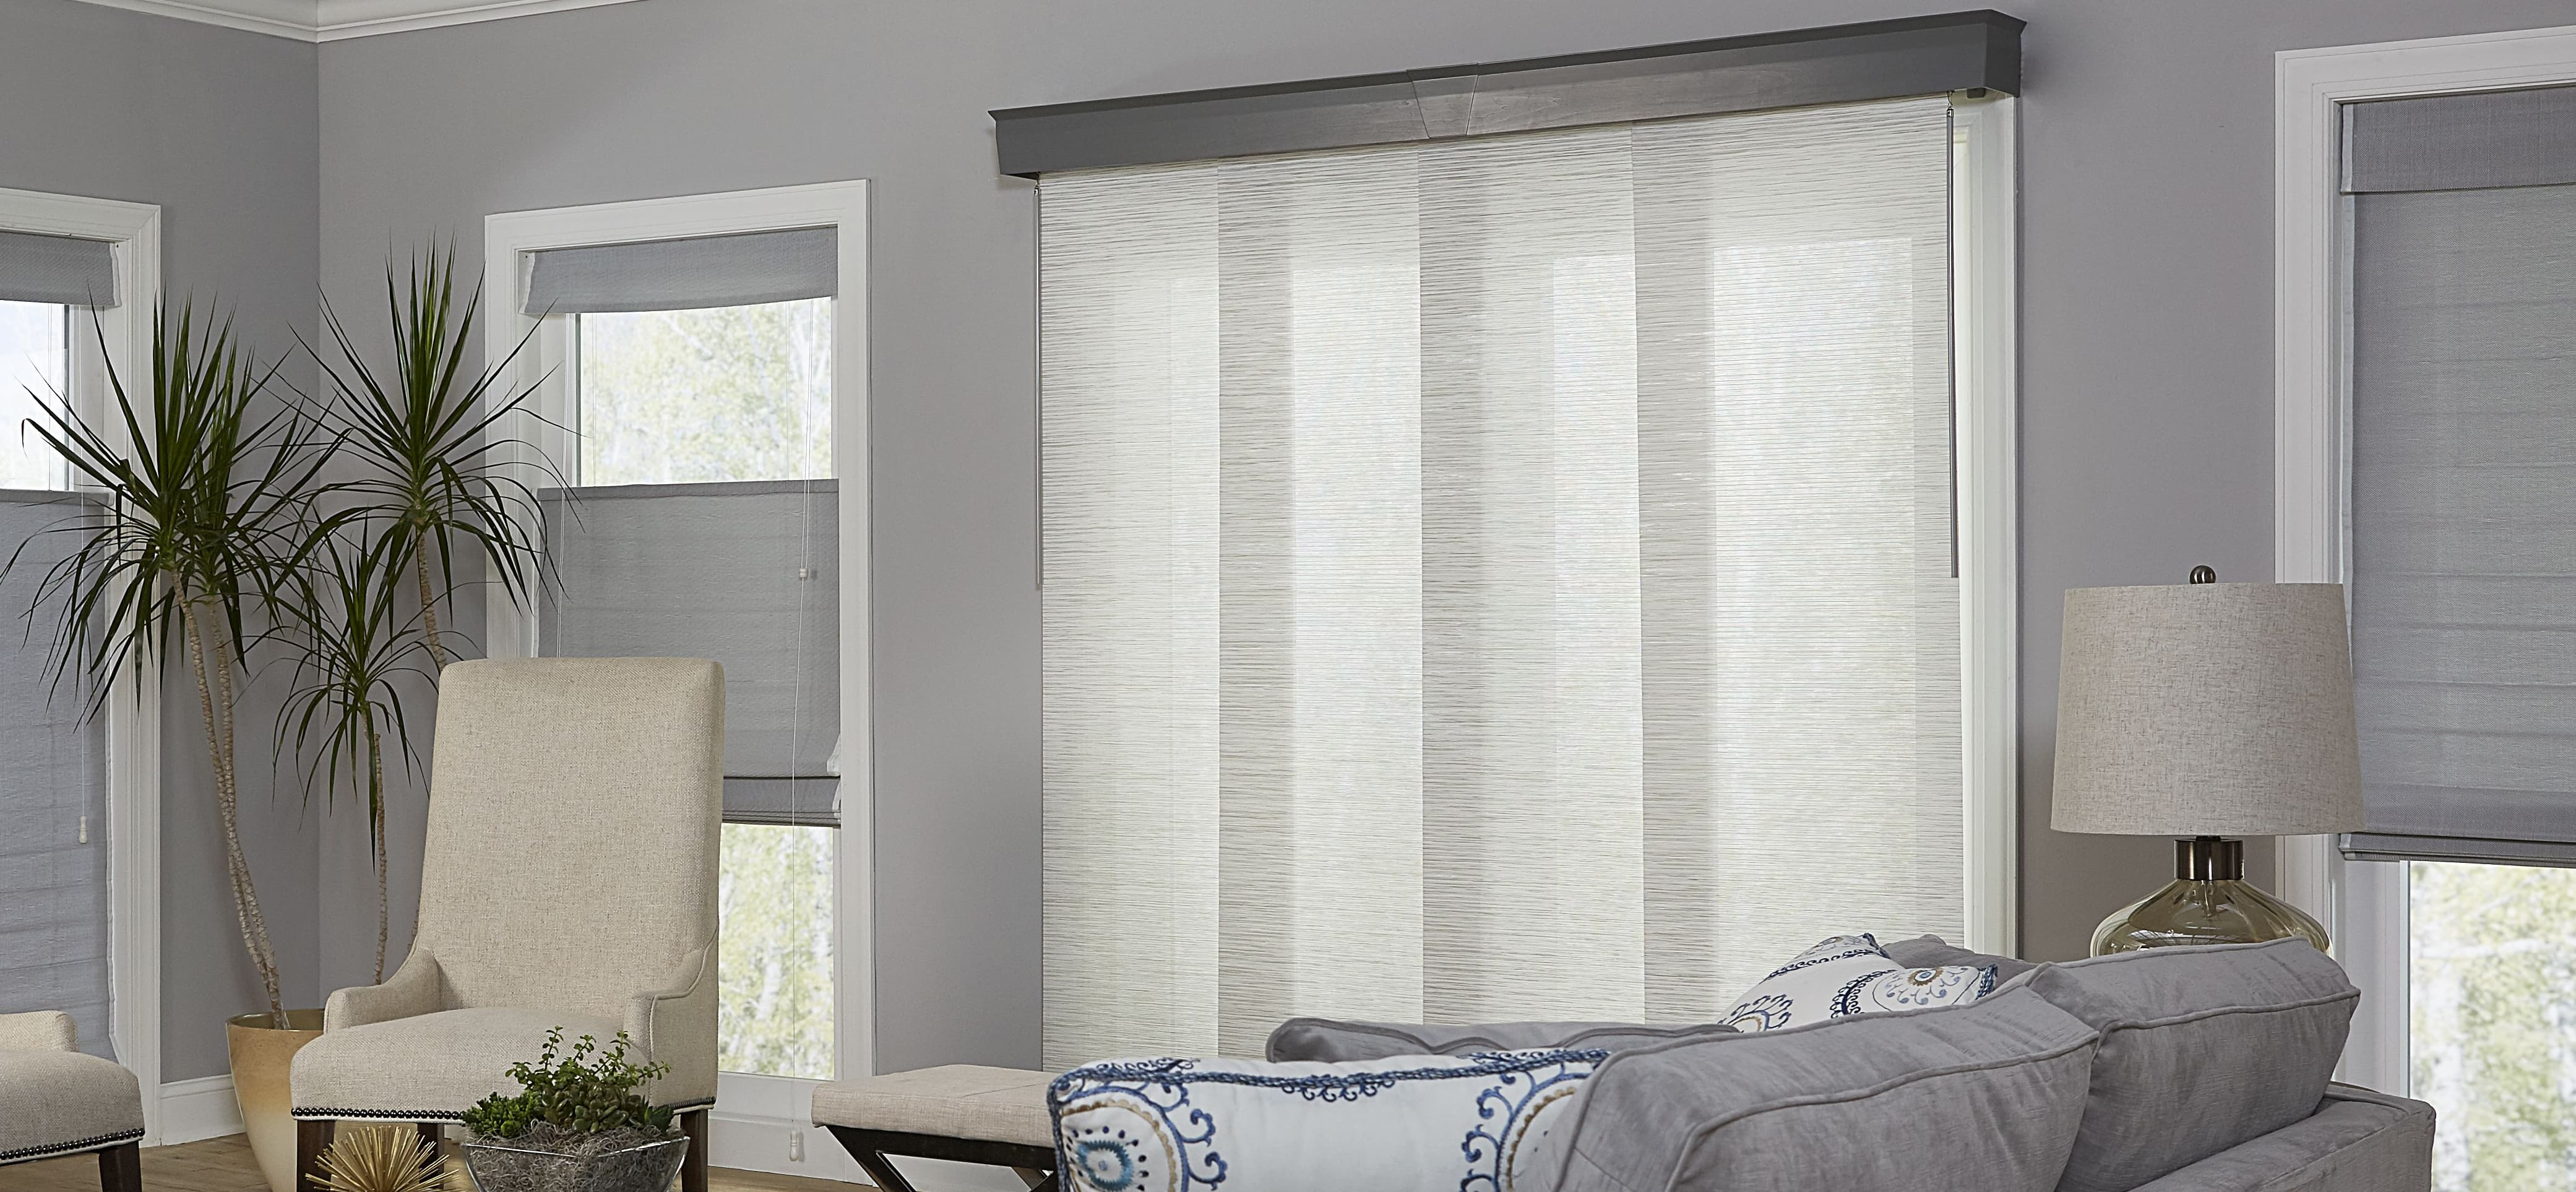 Blinds For Sliding Gl Doors Alternatives To Vertical The Finishing Touch